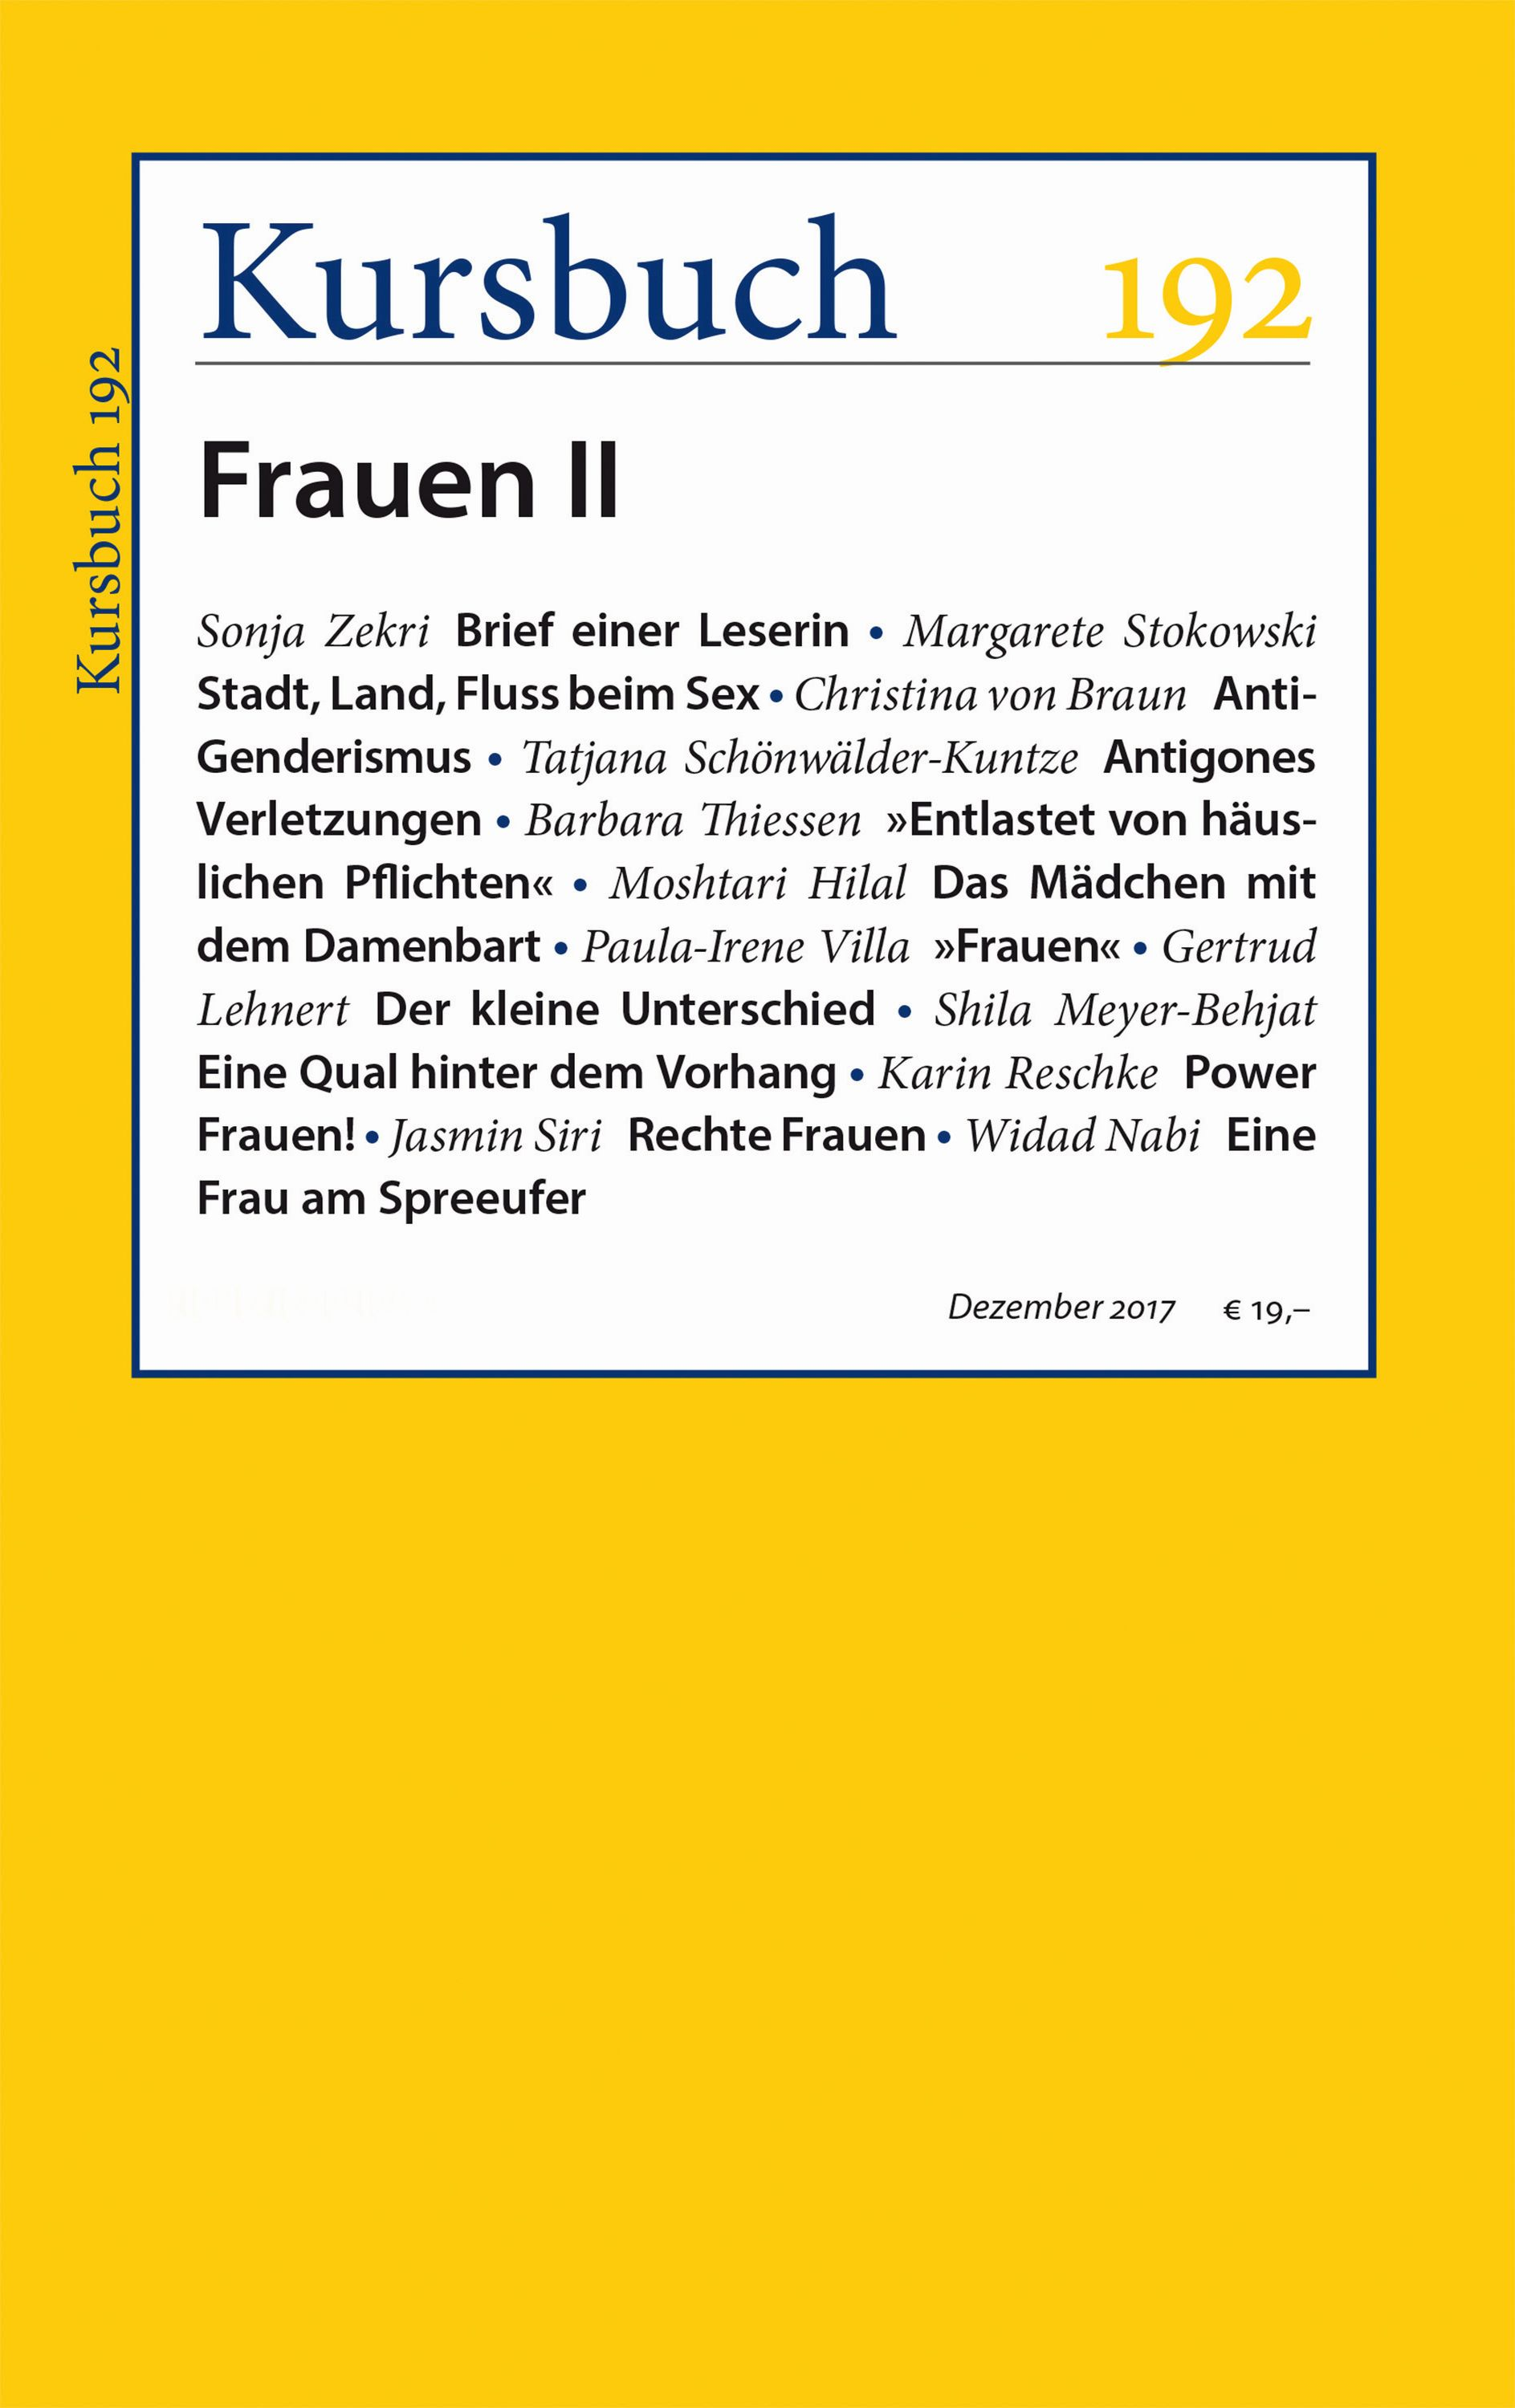 Kursbuch 192 – Editorial